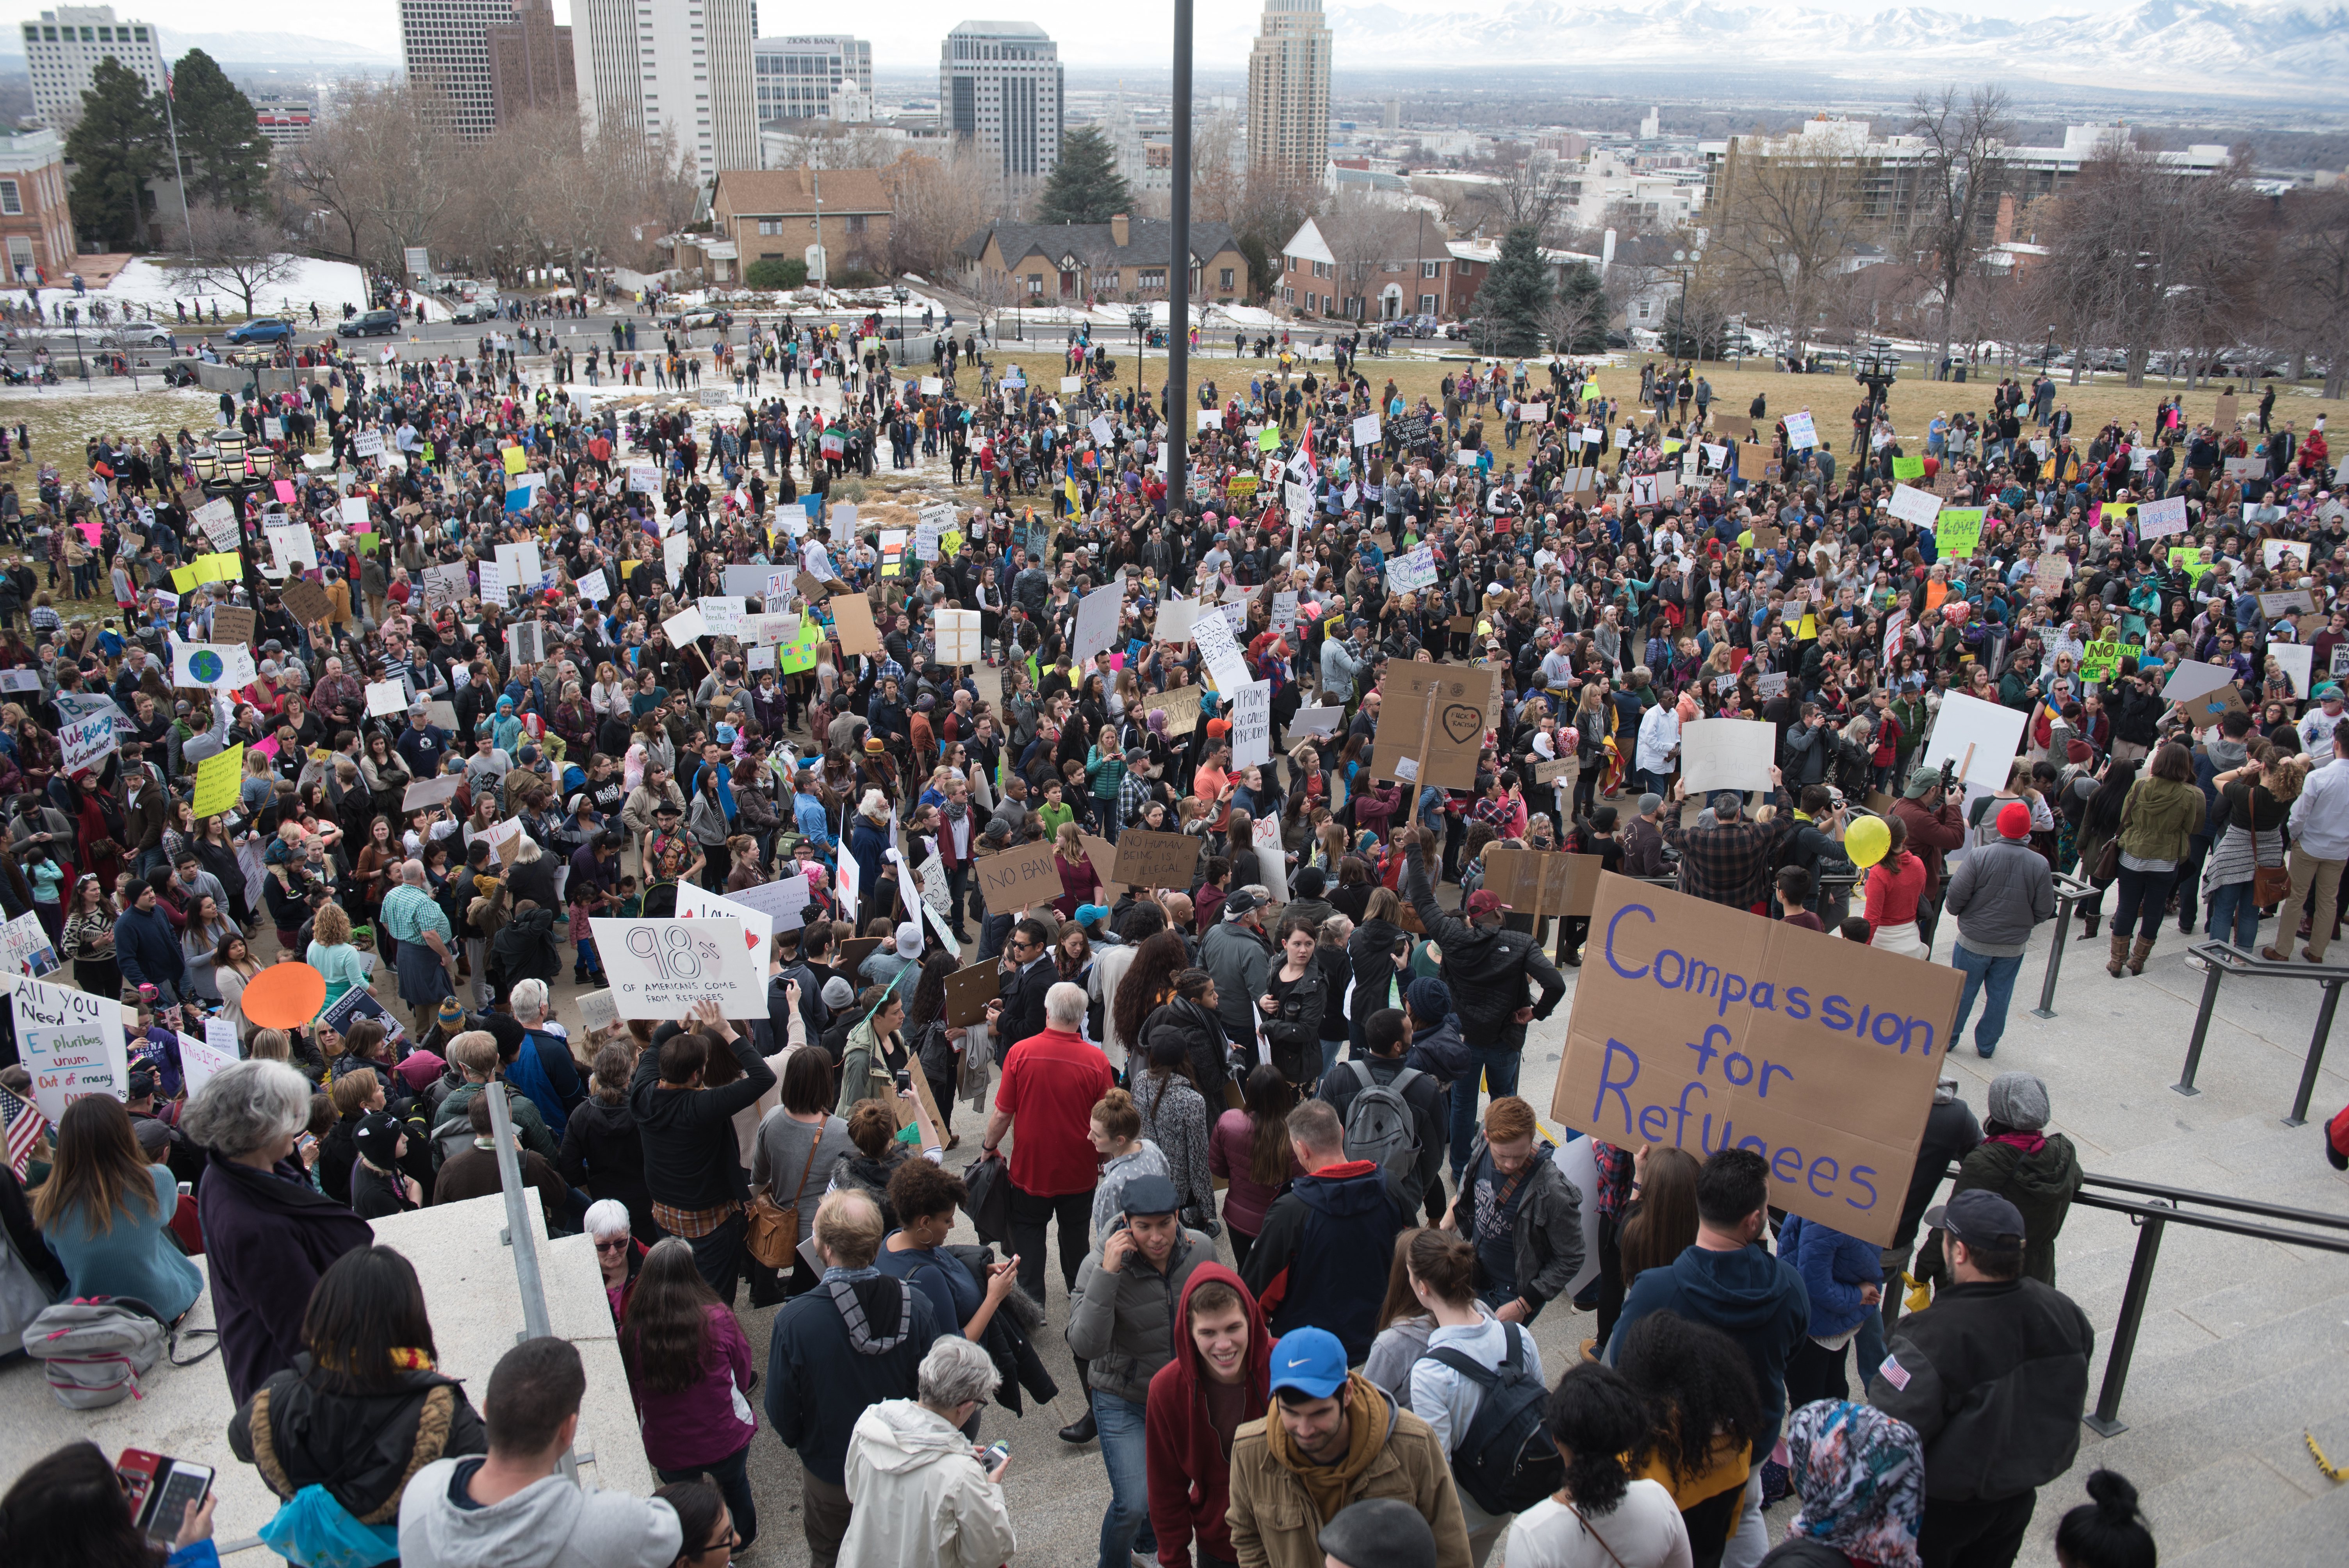 Marchers gather in front of the Utah State Capitol to show support for Muslims and refugees Saturday, Feb. 4. (Ryan Turner)